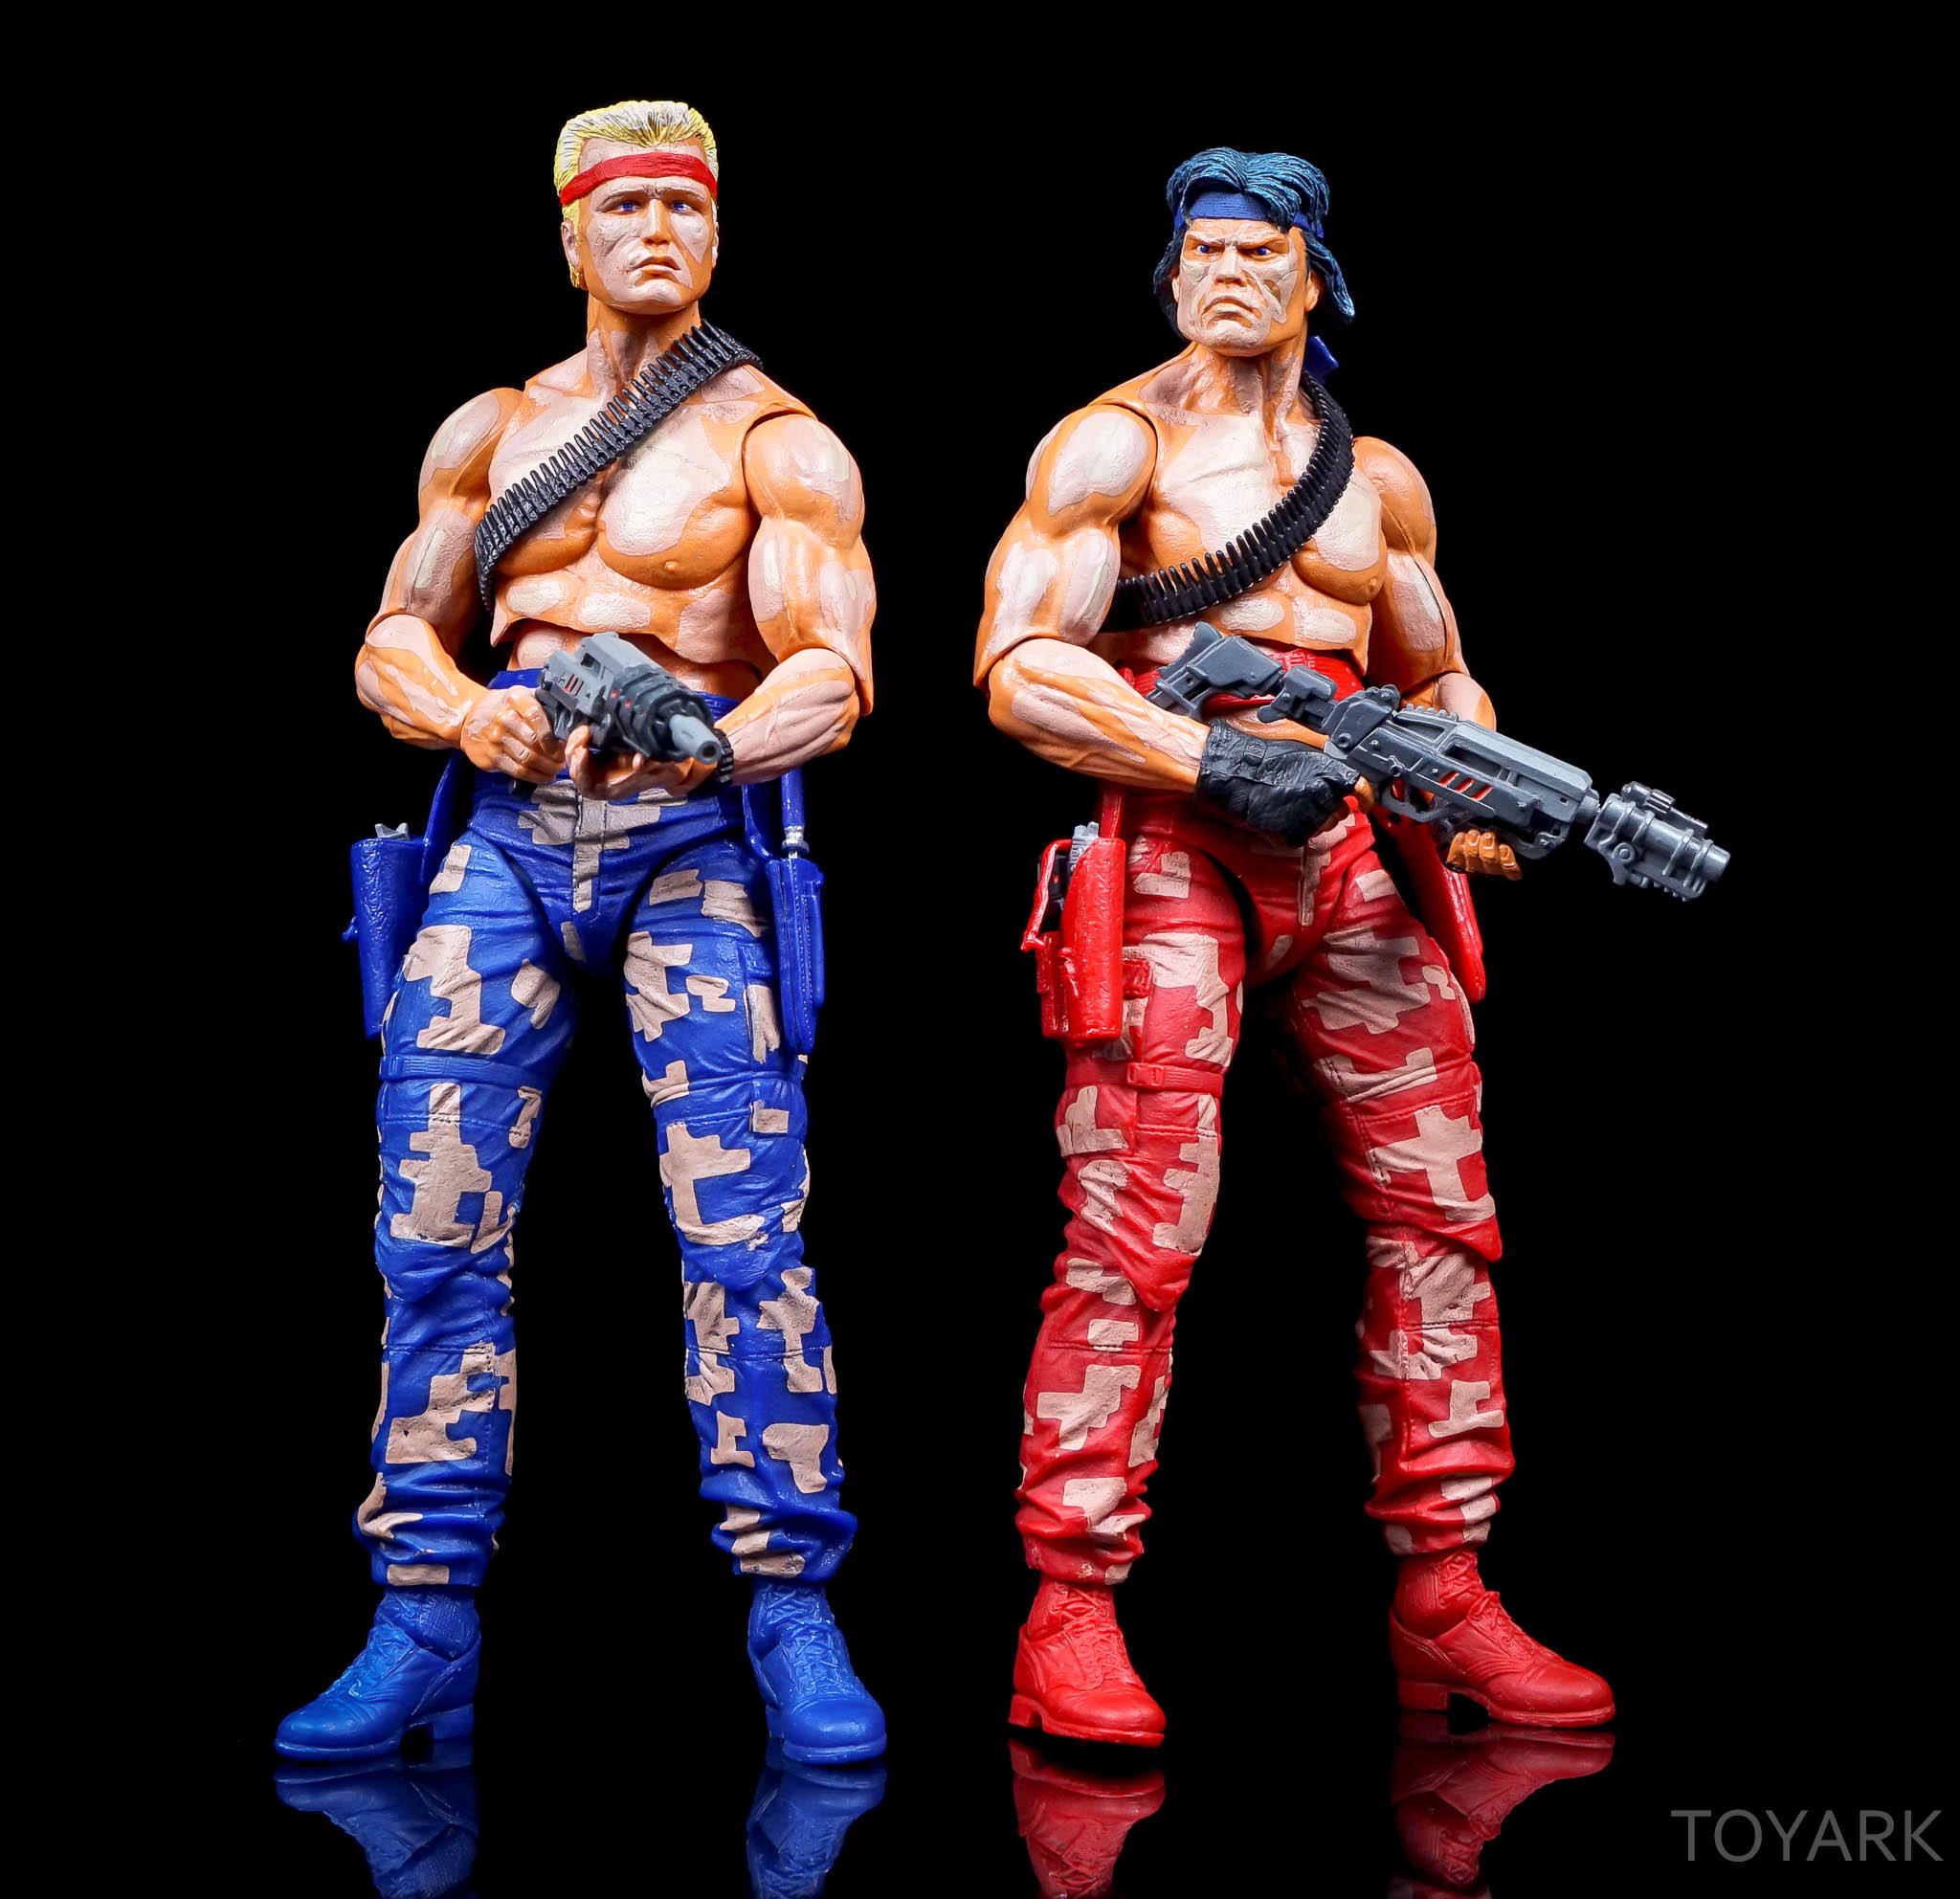 http://news.toyark.com/wp-content/uploads/sites/4/2016/08/NECA-Contra-VGA-052.jpg